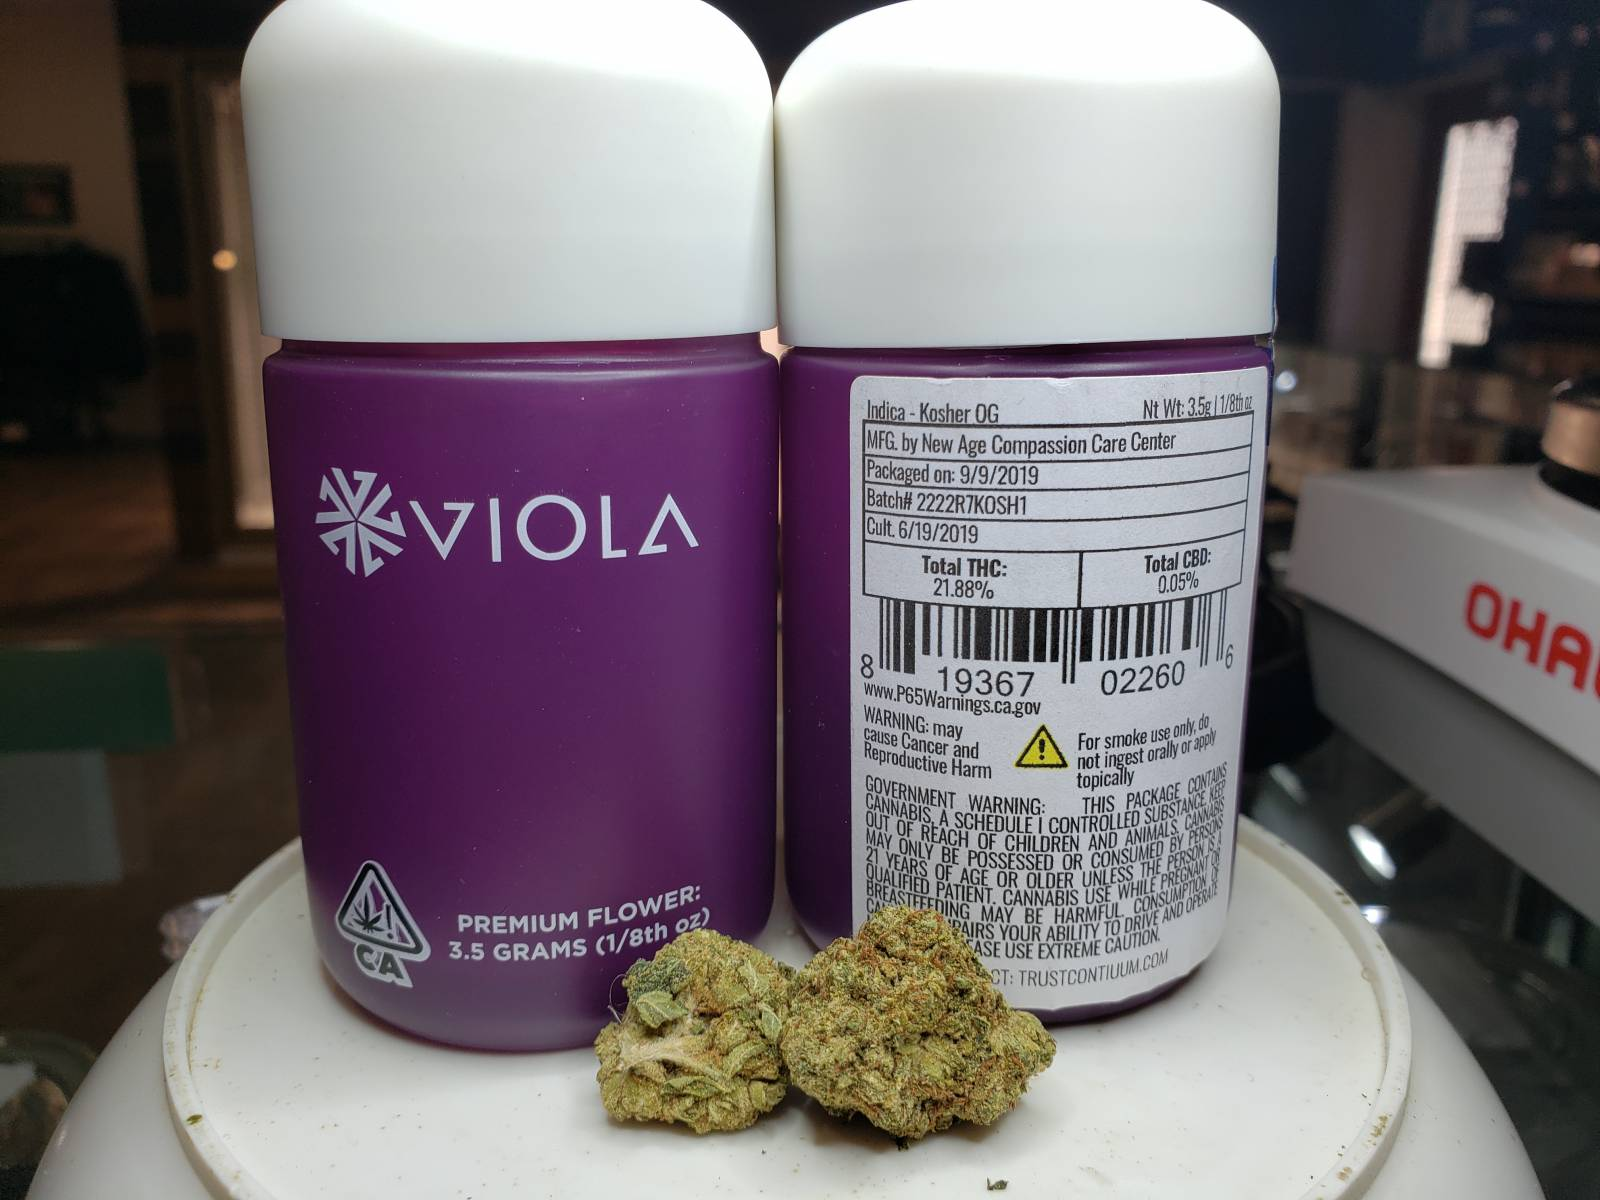 Viola kosher OG prepackaged eighth